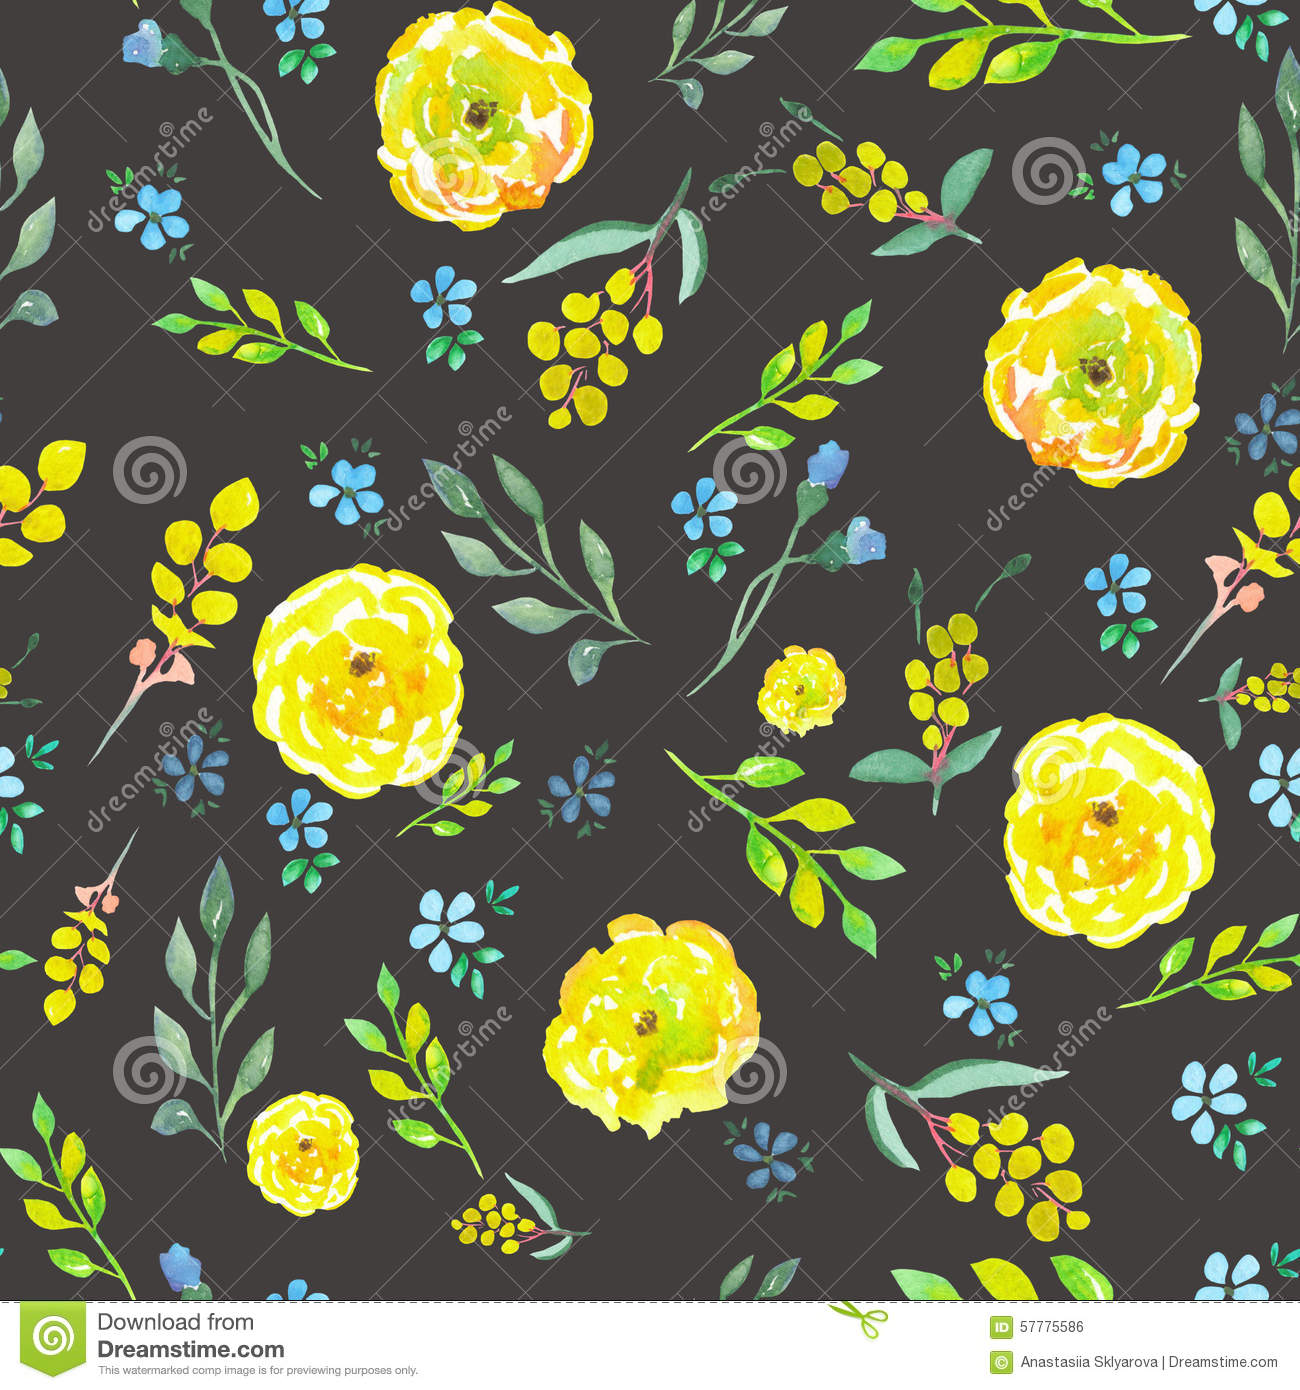 Seamless Floral Pattern With Watercolor Yellow And Blue Flowers